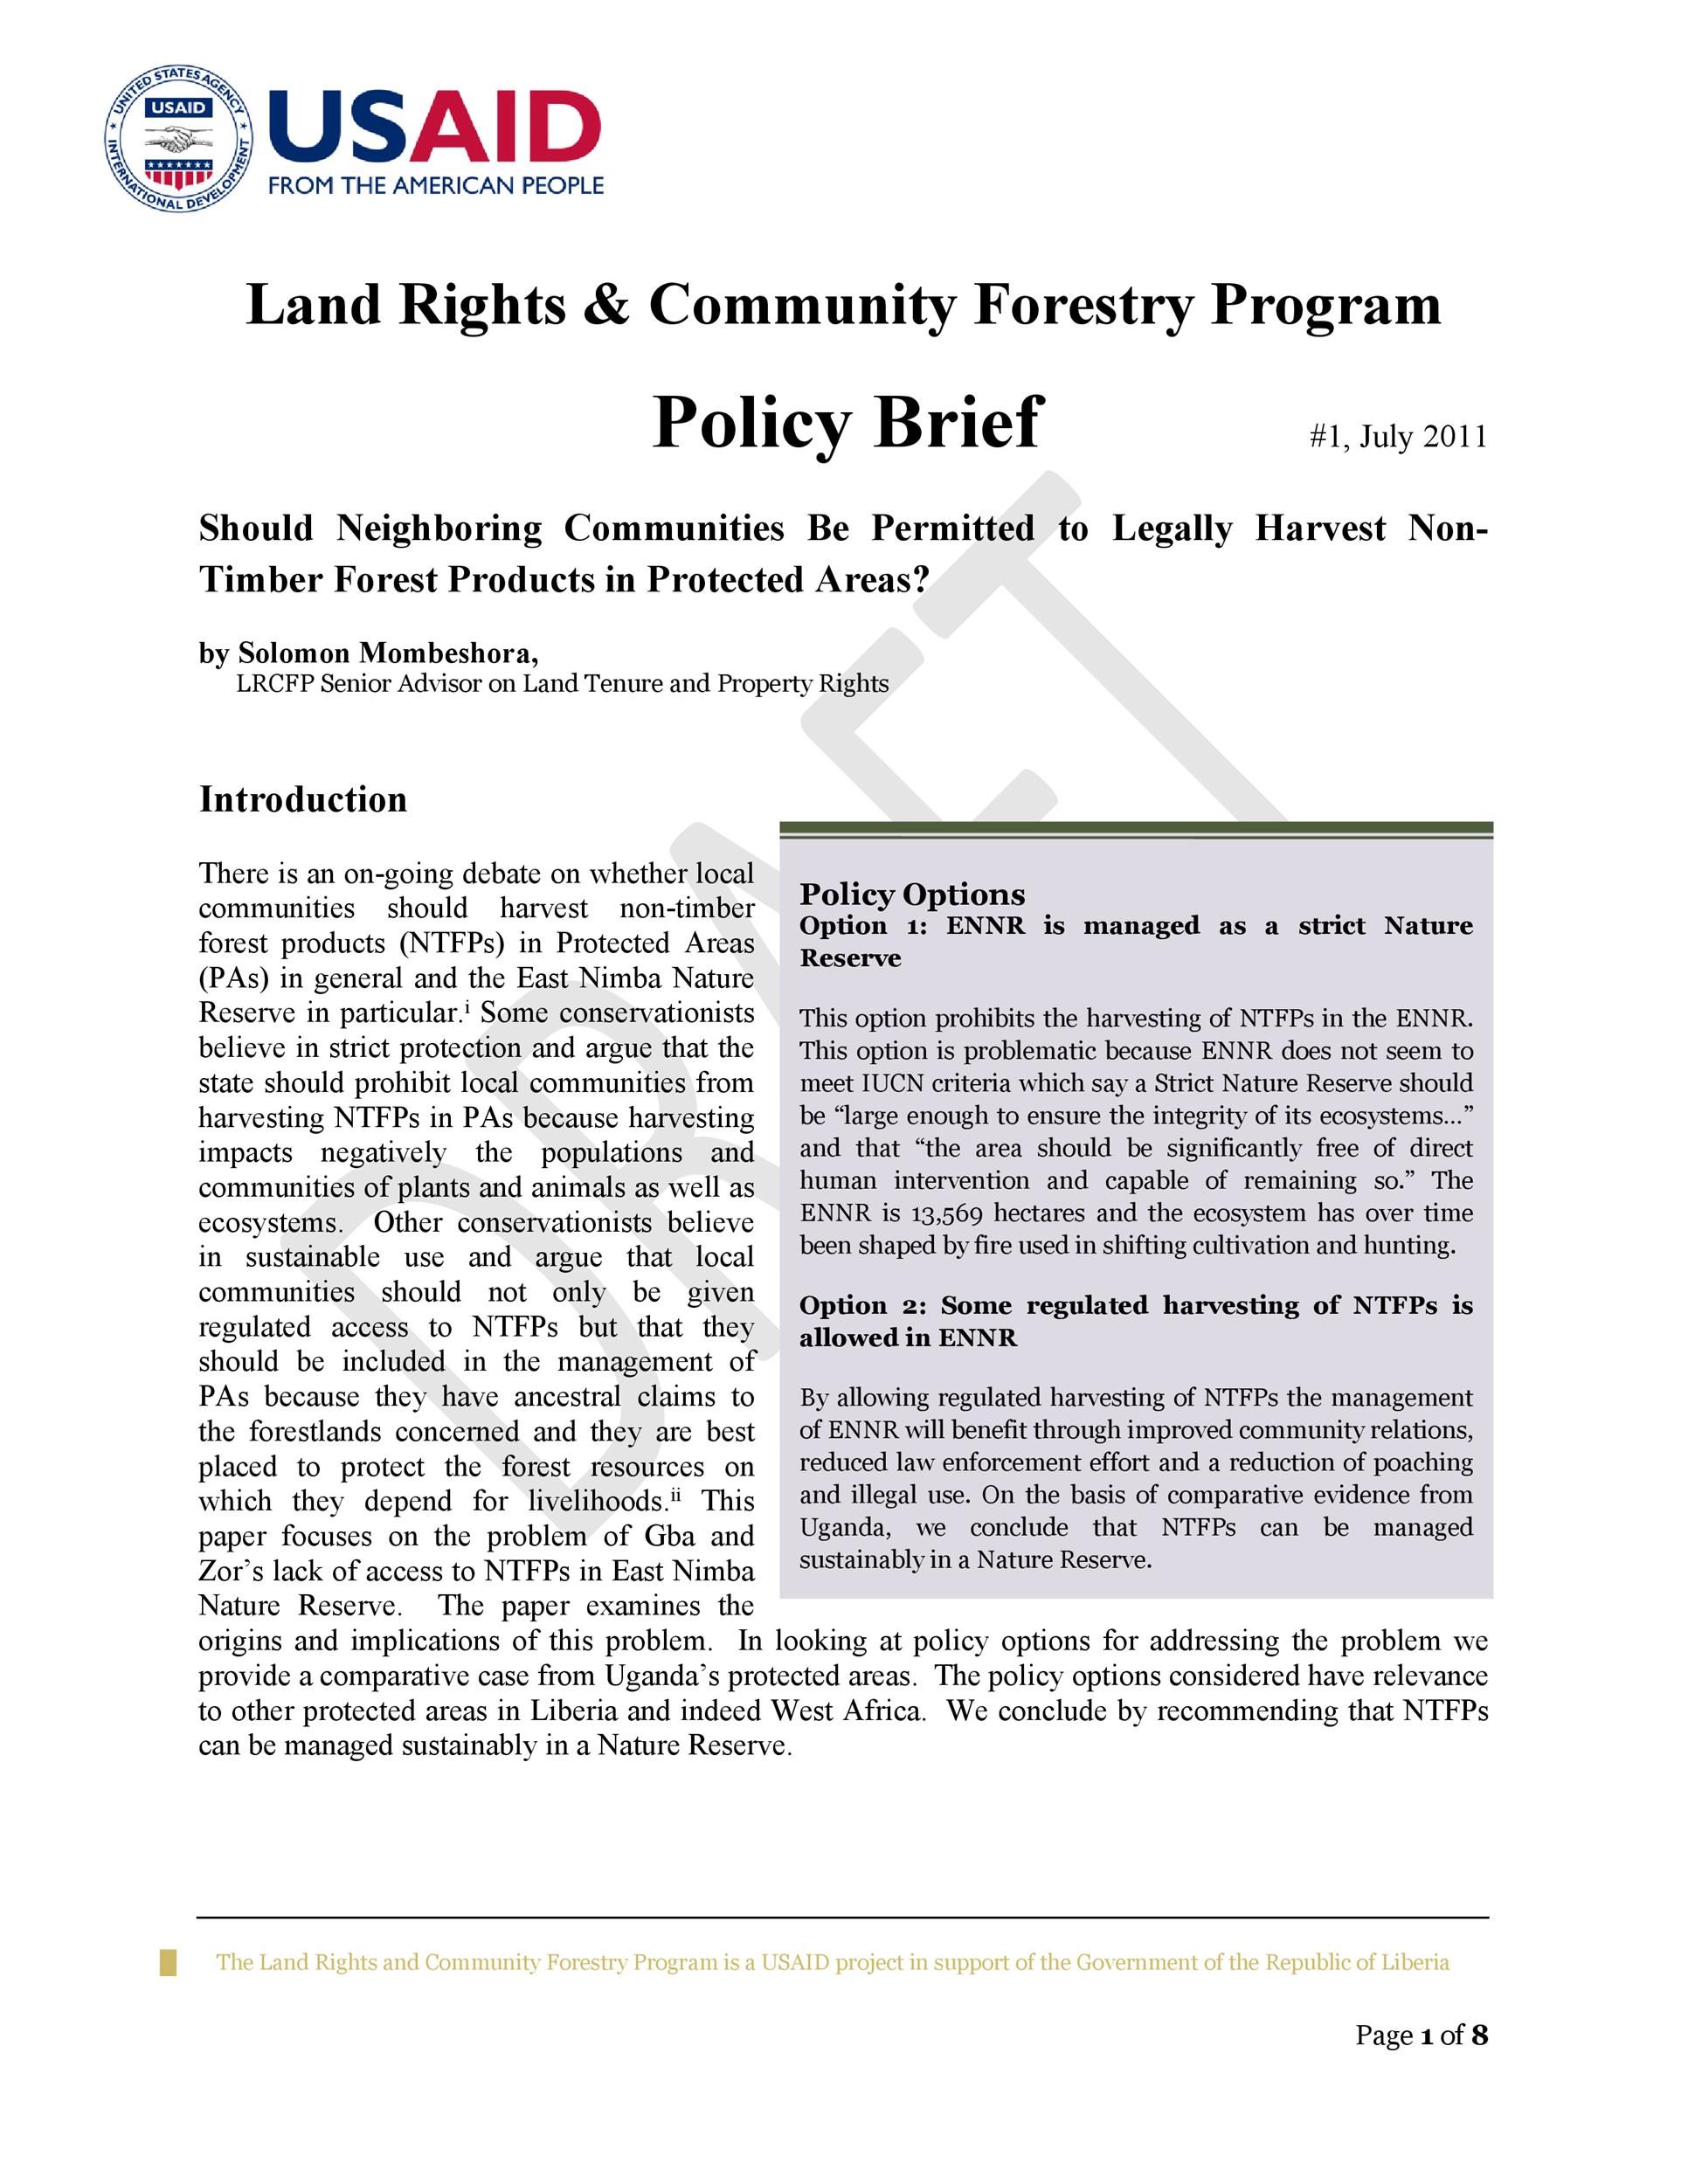 Free policy brief template 20